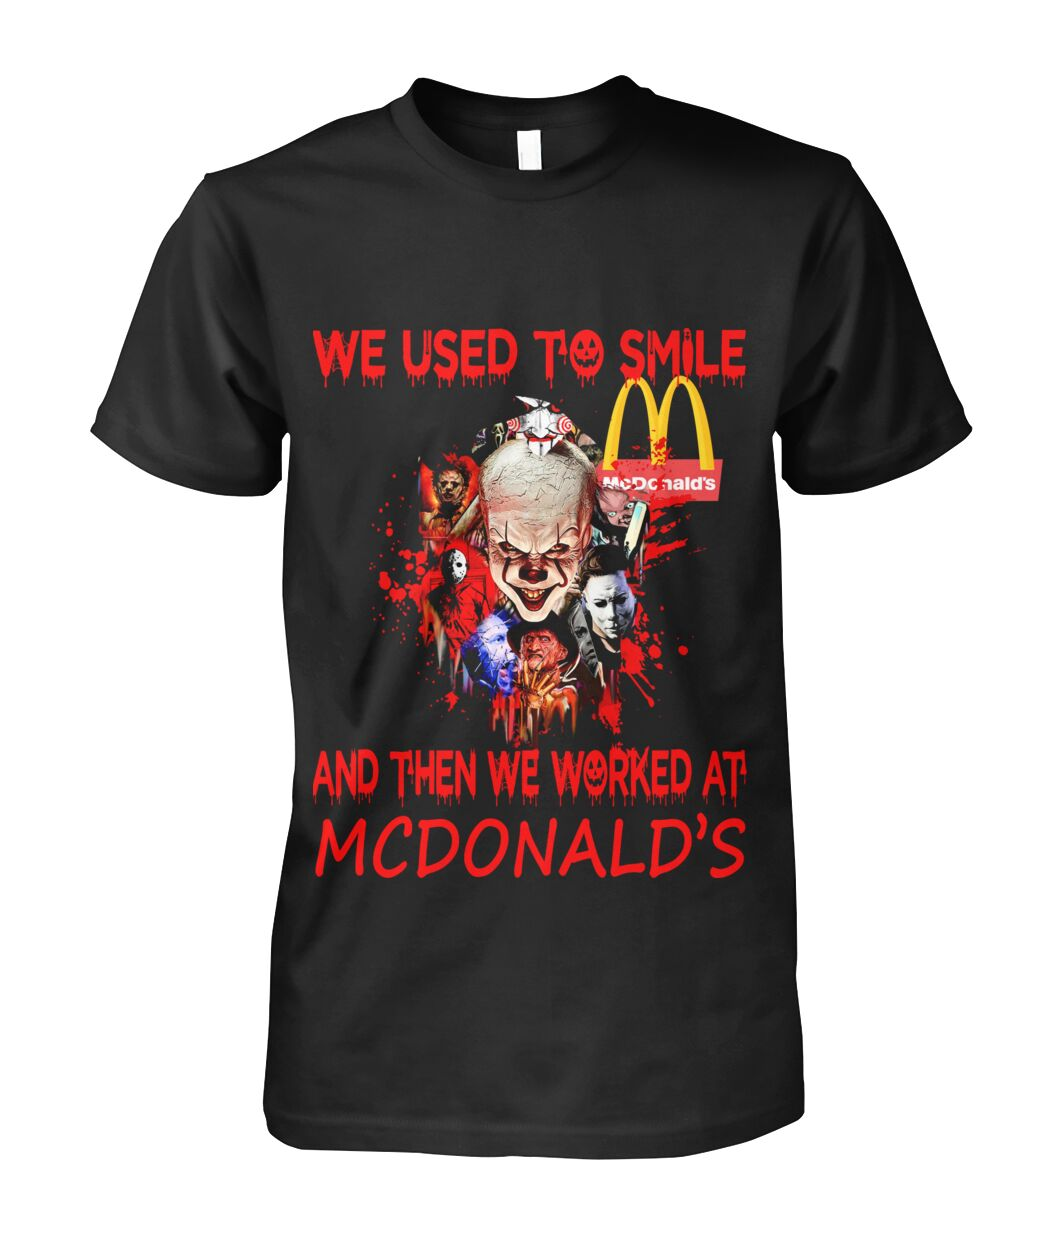 We Used To Smile And Then We Worked At Mcdonald's Shirt